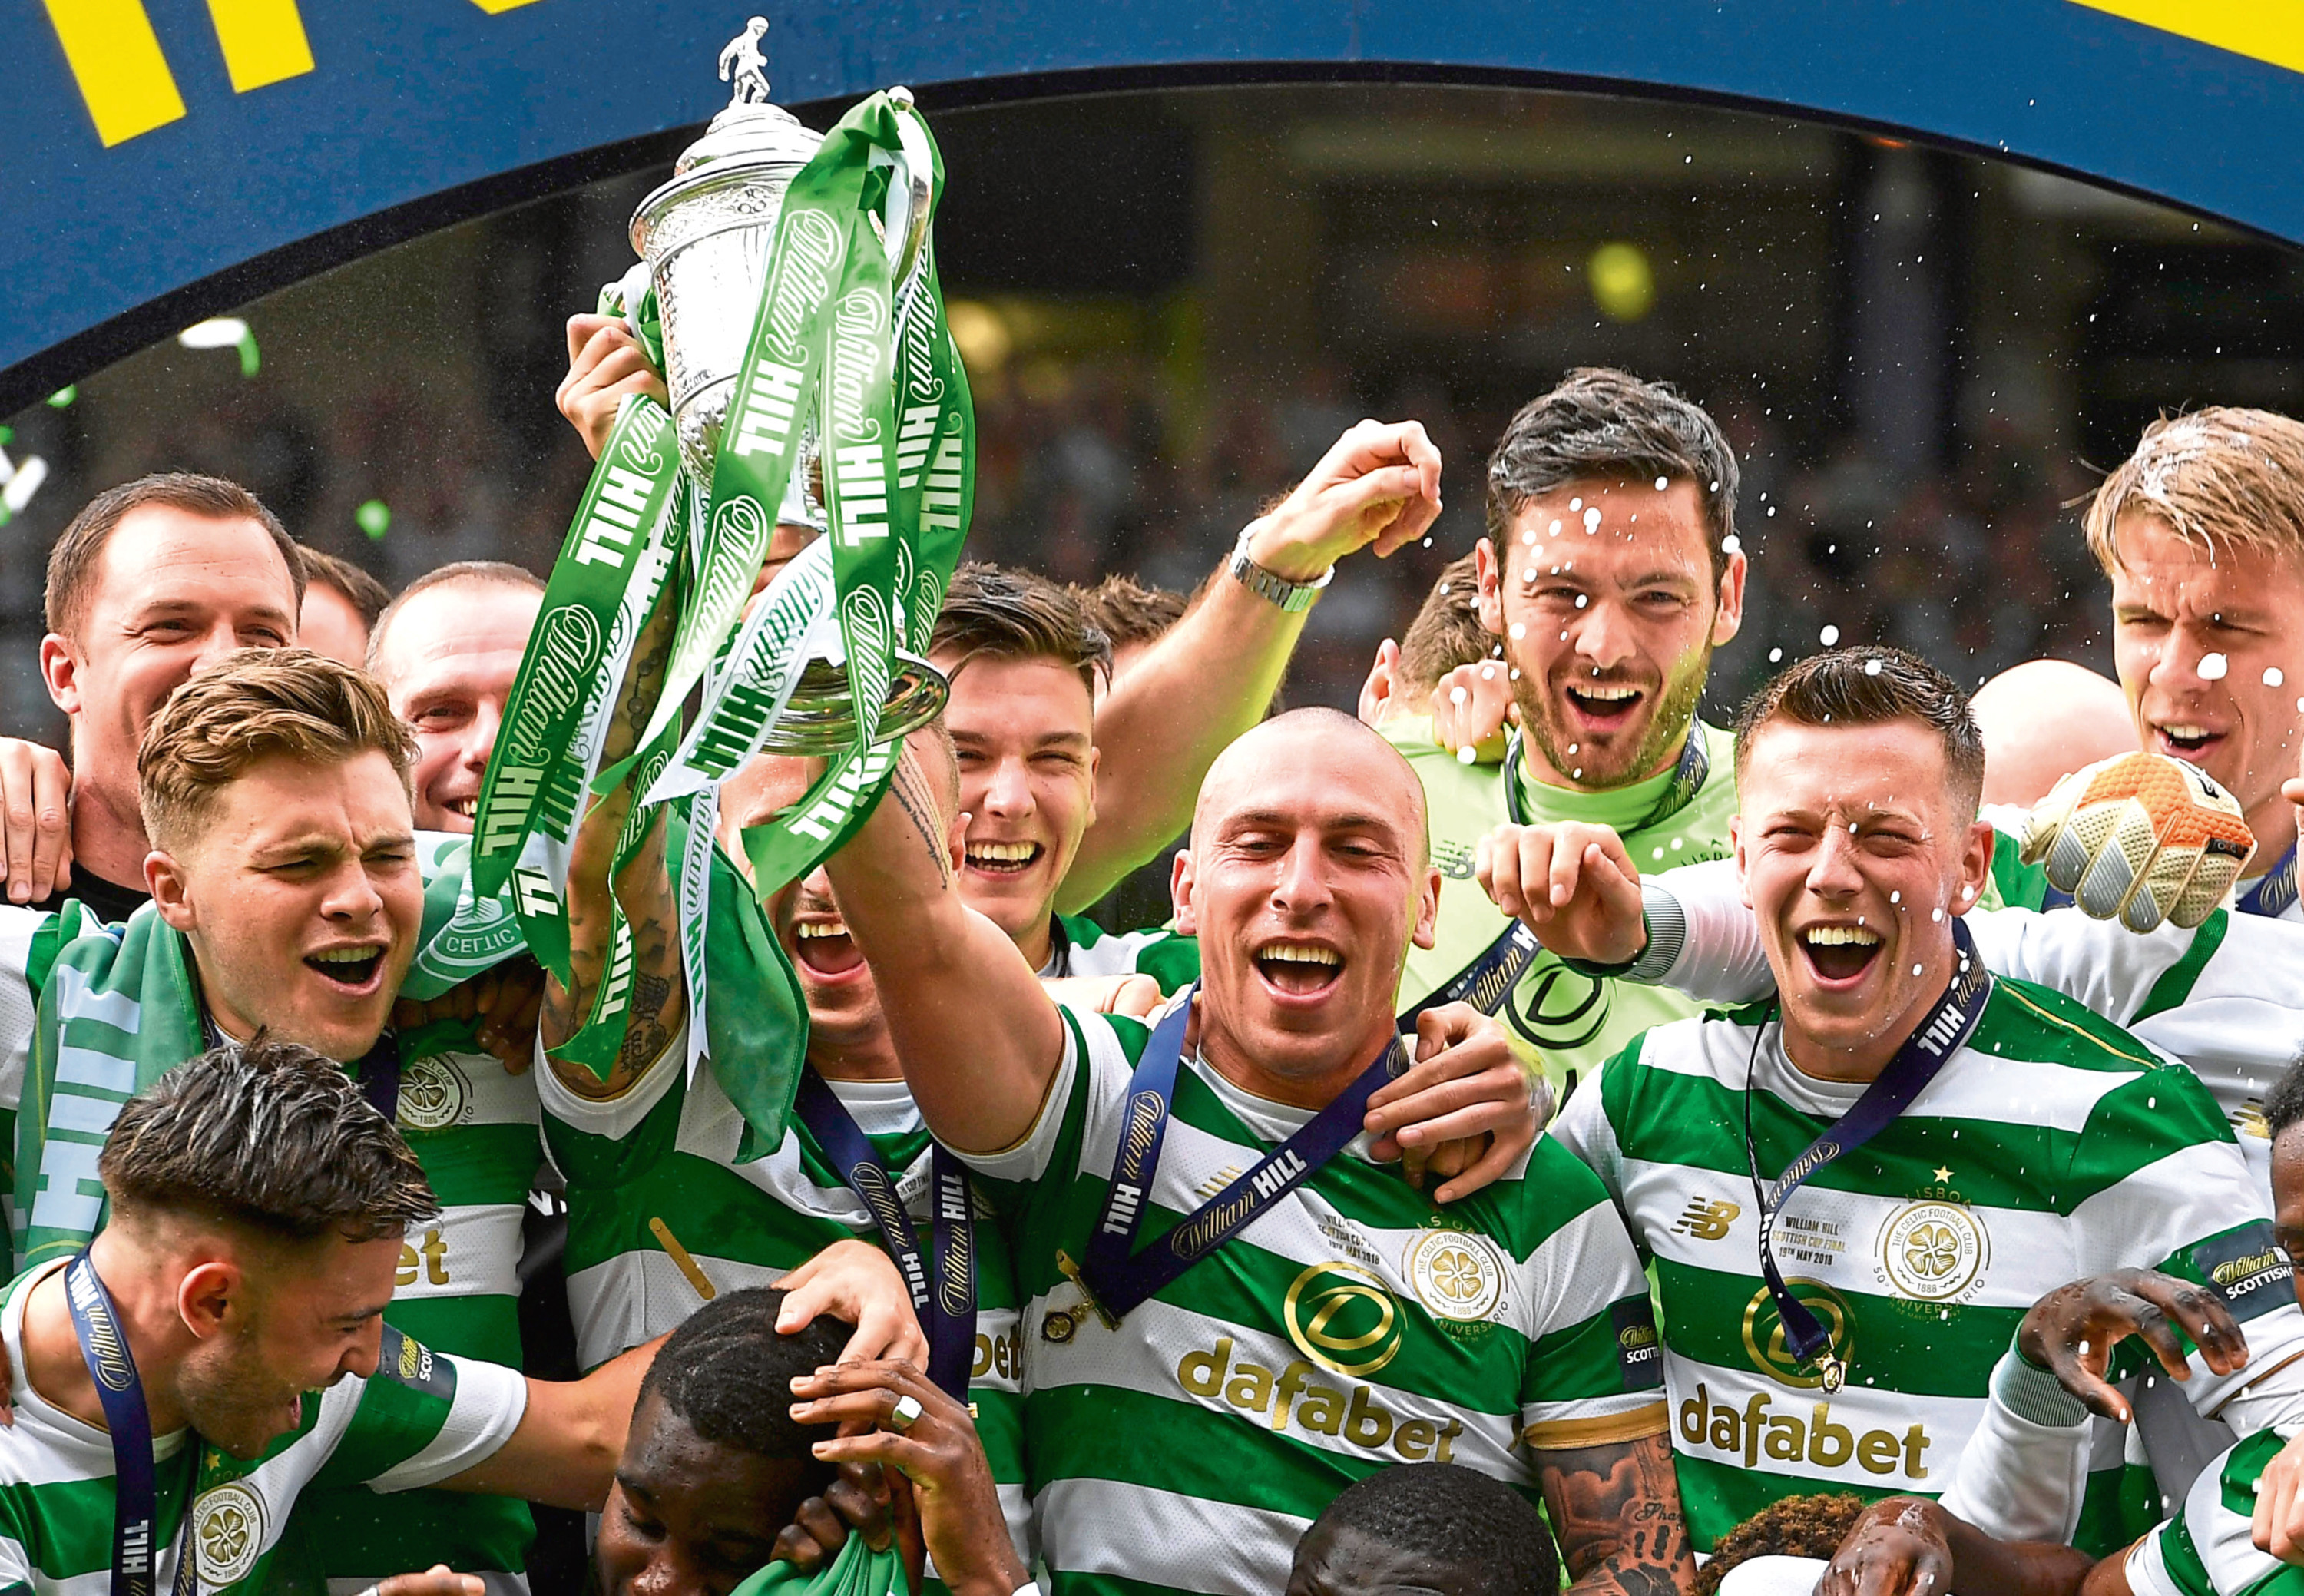 19/05/18 WILLIAM HILL SCOTTISH CUP FINAL   MOTHERWELL v CELTIC   HAMPDEN PARK - GLASGOW    Celtic Captain Scott Brown Lifts the Scottish Cup with the team.